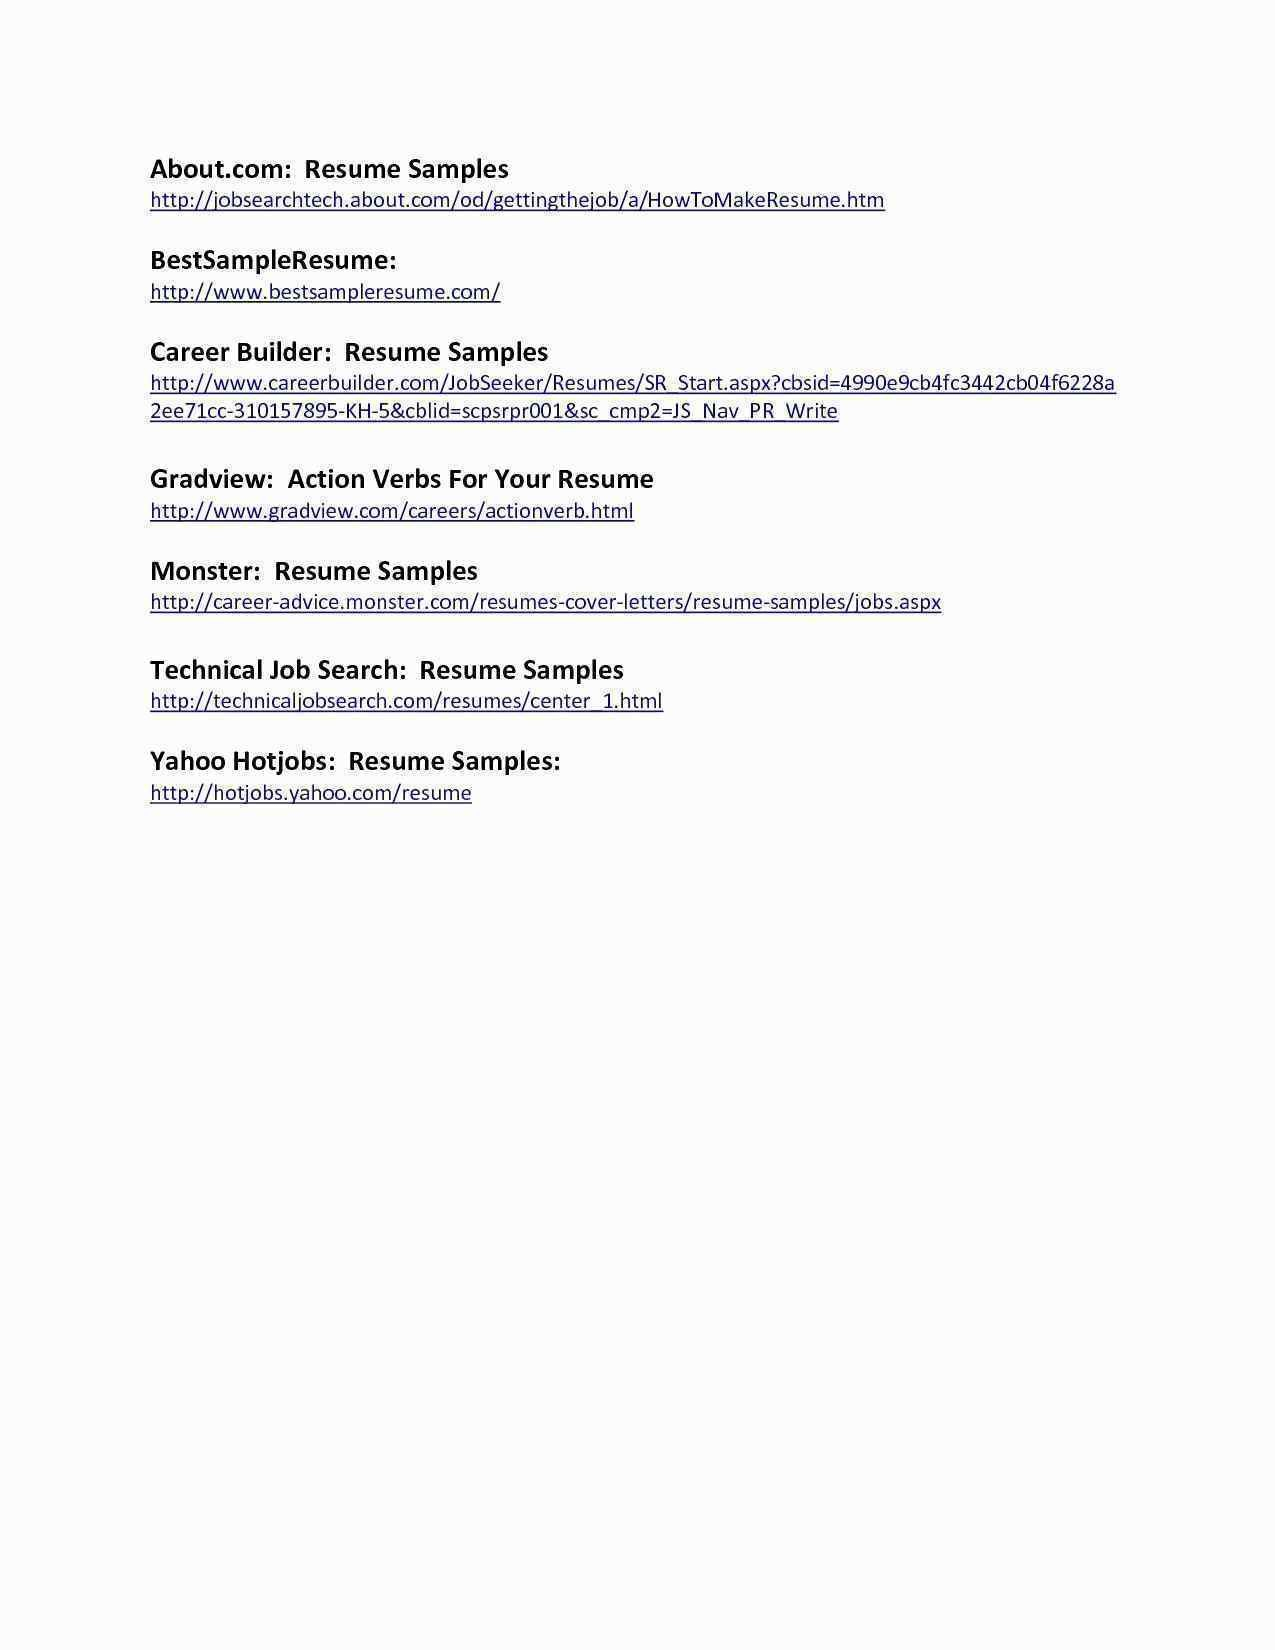 Mba Application Resume Template - Cover Letter for Mba Application Fresh Program Analyst Cover Letter